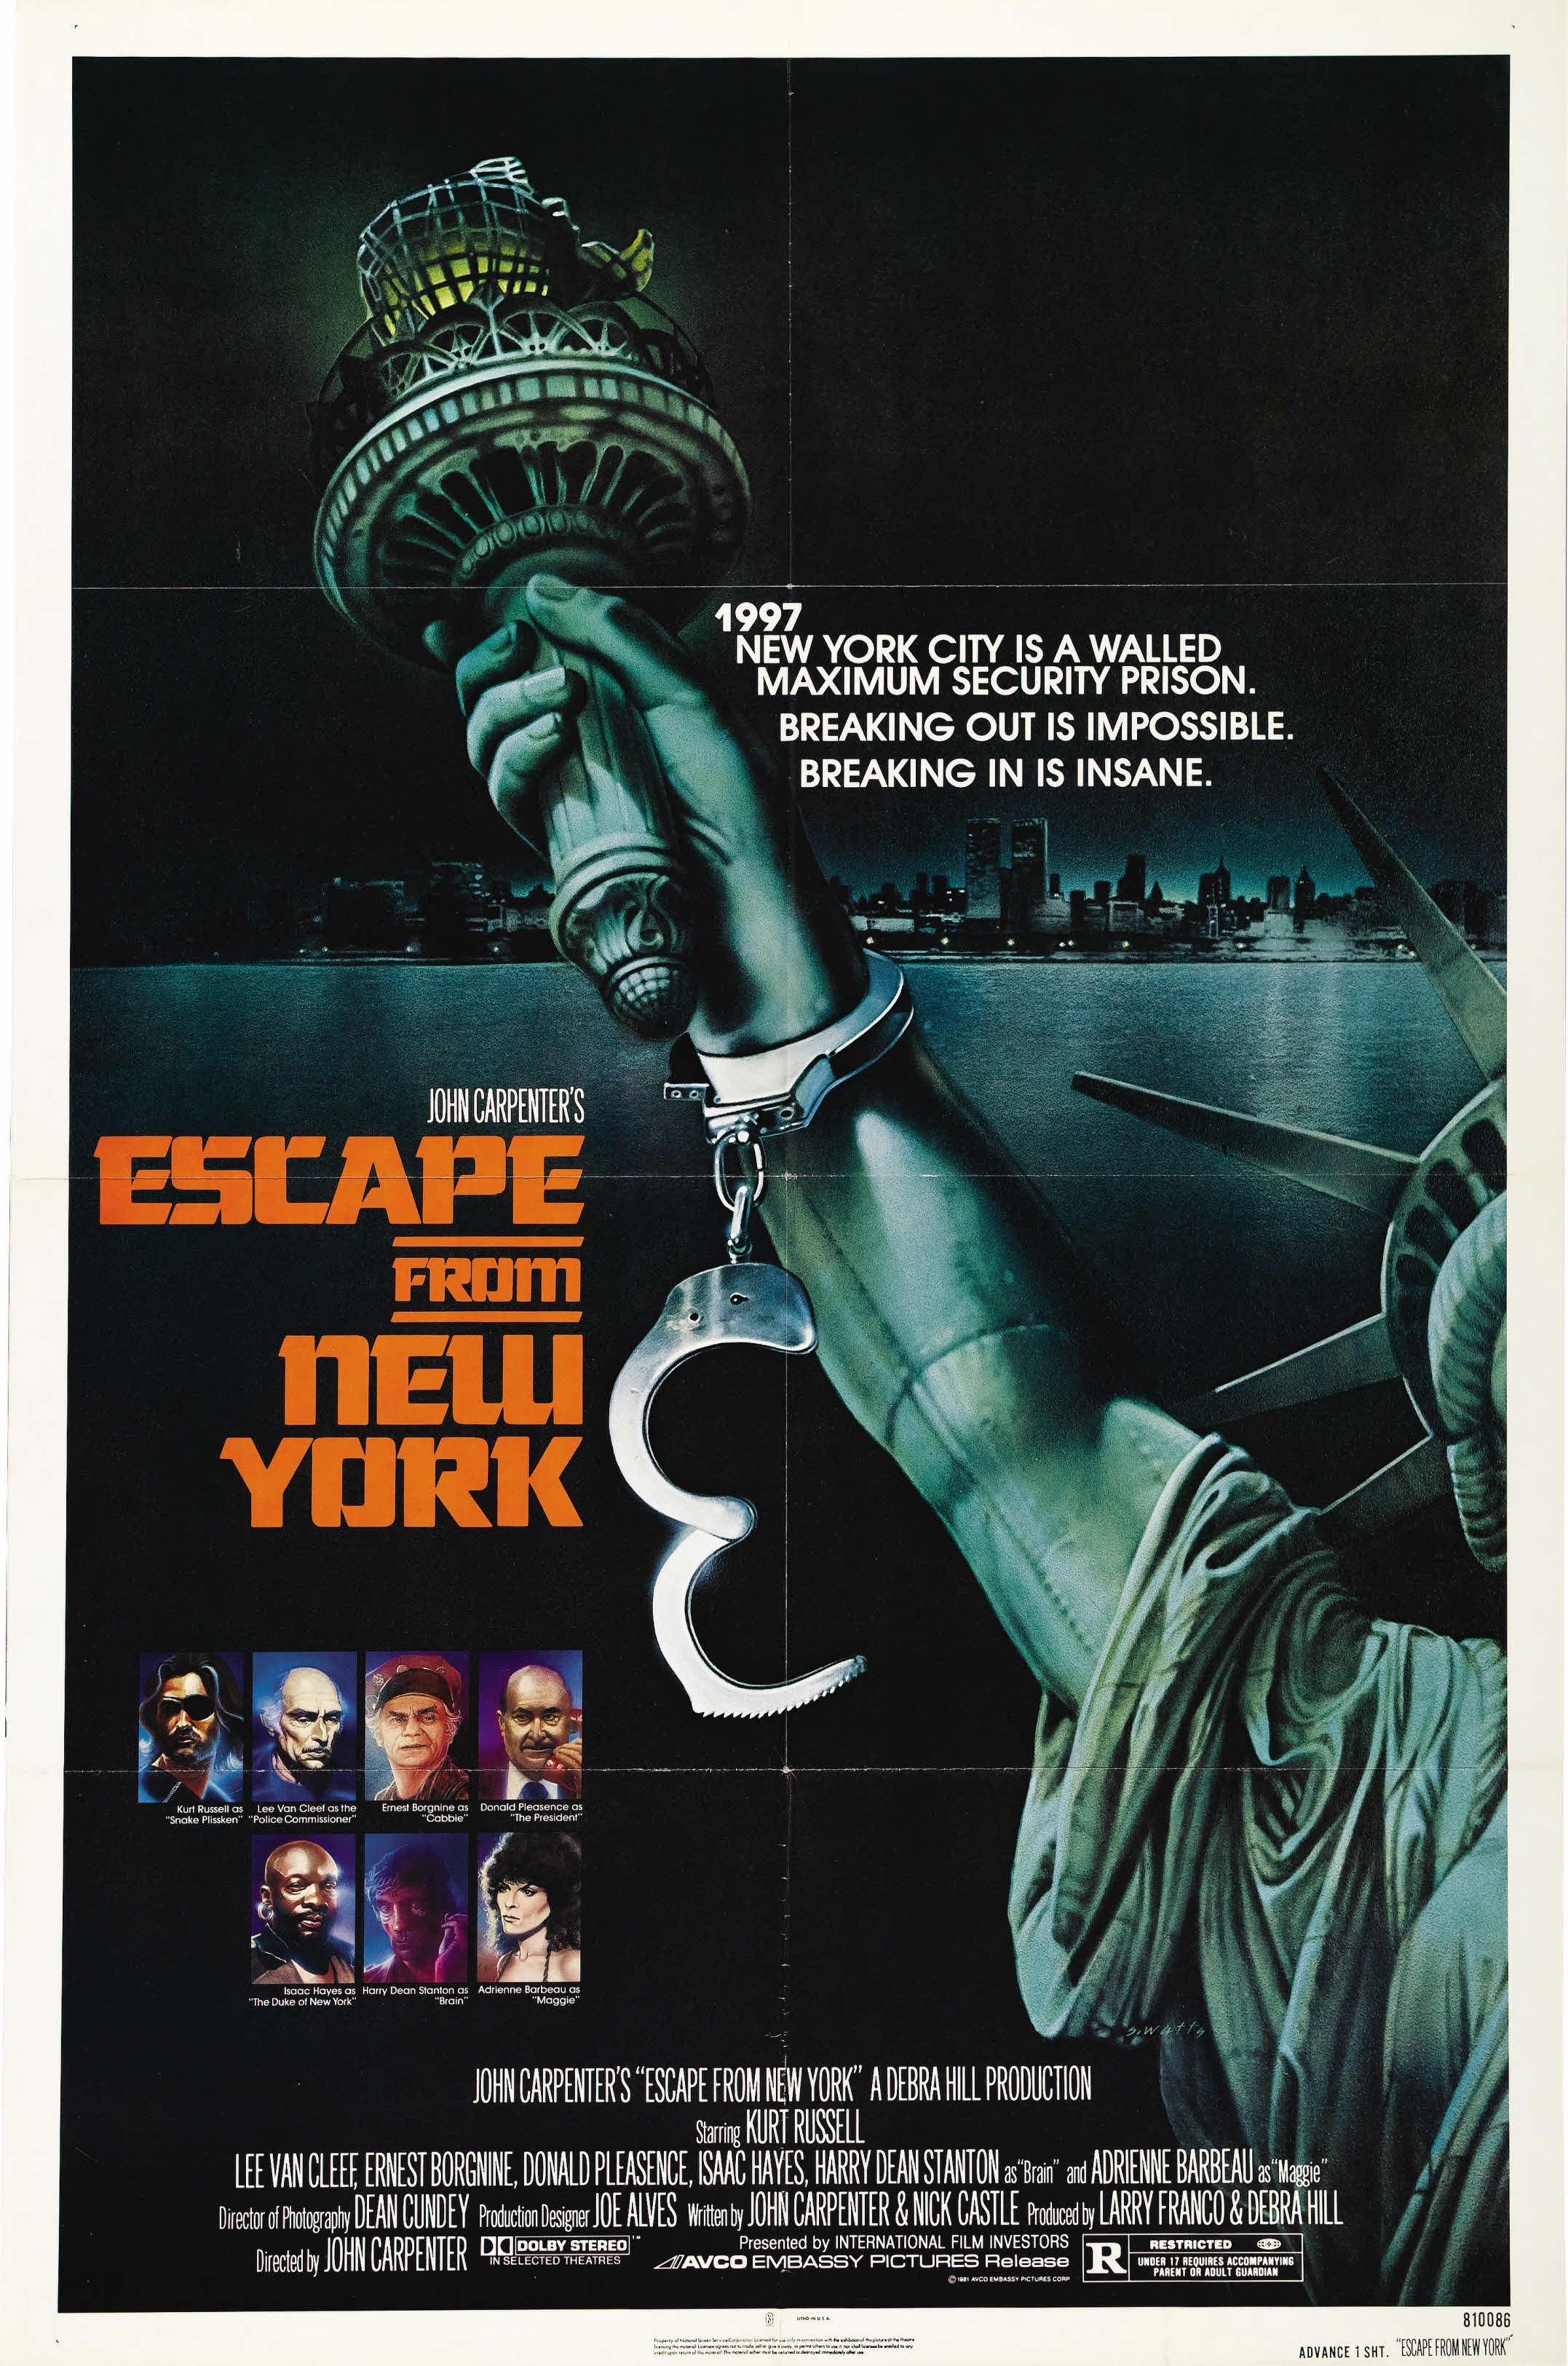 Affiches Posters Et Images De New York 1997 1981